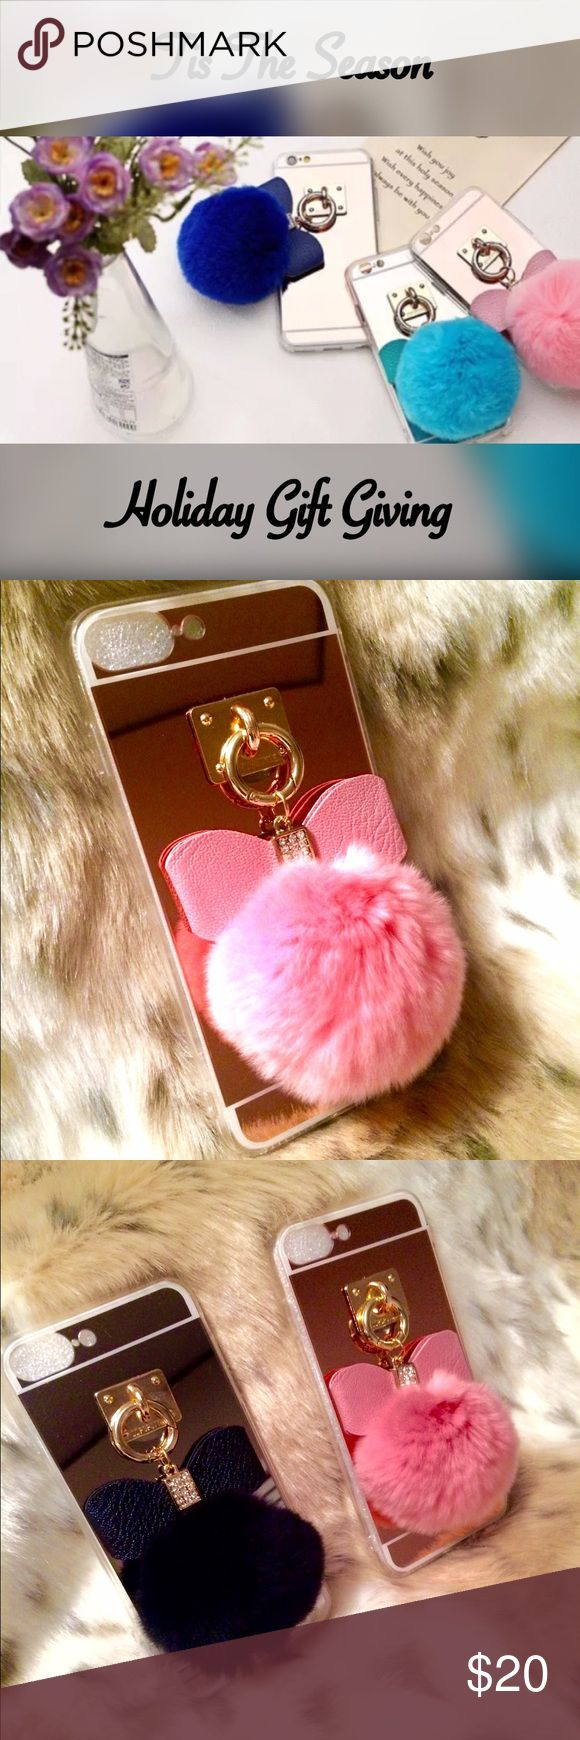 ✨New Rose Gold IPhone 7 Plus Flexi Case Stay stylish & protected with this soft, Rose Gold mirrored, pink rabbit fur flexi case adorned with a studded faux leather bow!  Very flexible, easy to grip, & aesthetically pleasing to the eye! The perfect holiday gift! Order yours today! Offers welcome! Accessories Phone Cases